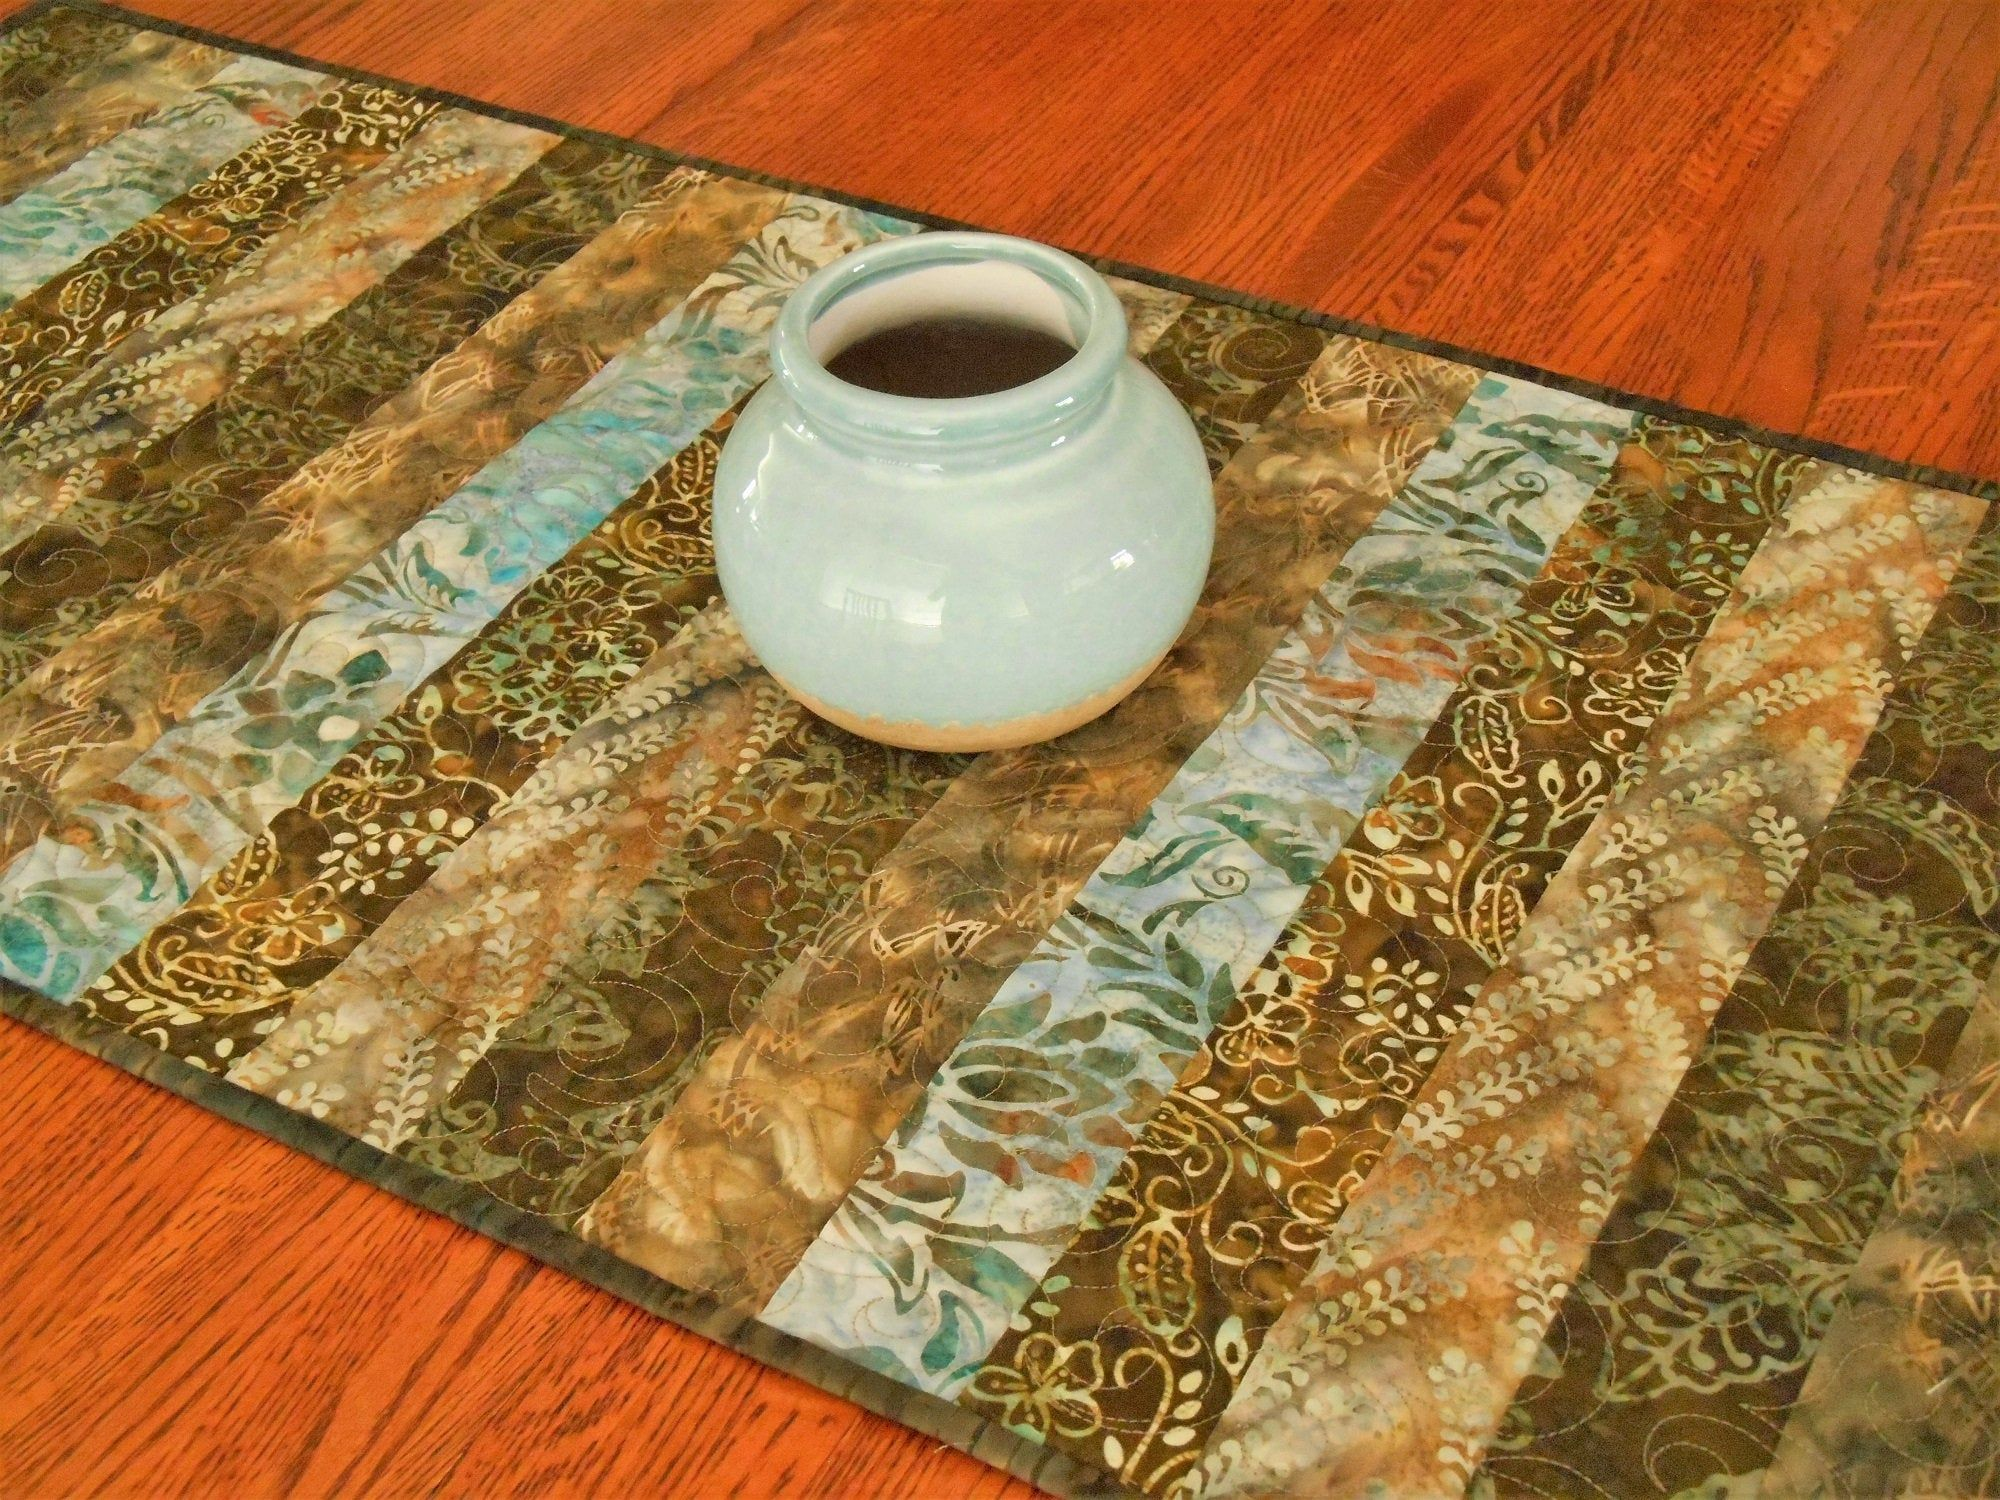 Brown And Blue Quilted Batik Table Runner Dining Table Runner Coffee Table Runner Dresser Runne Batik Table Runners Dining Table Runners Coffee Table Runner